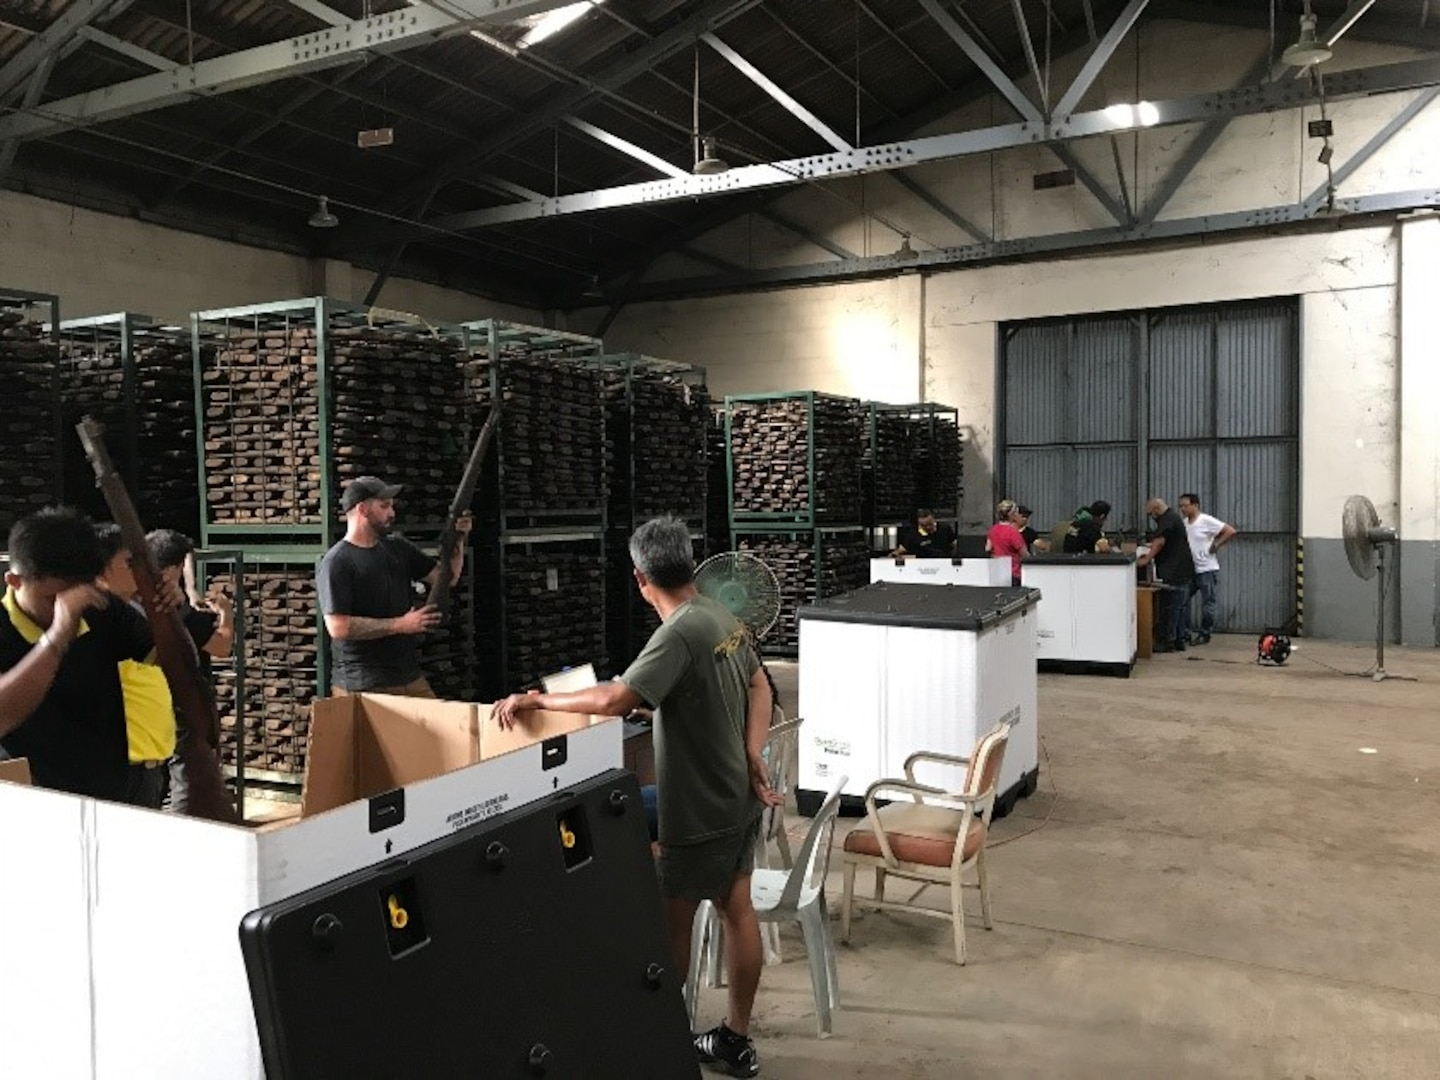 Transporting History Halfway Across the Globe: DLA Distribution repatriation project returns antique rifles from Philippines to U.S. despite obstacles